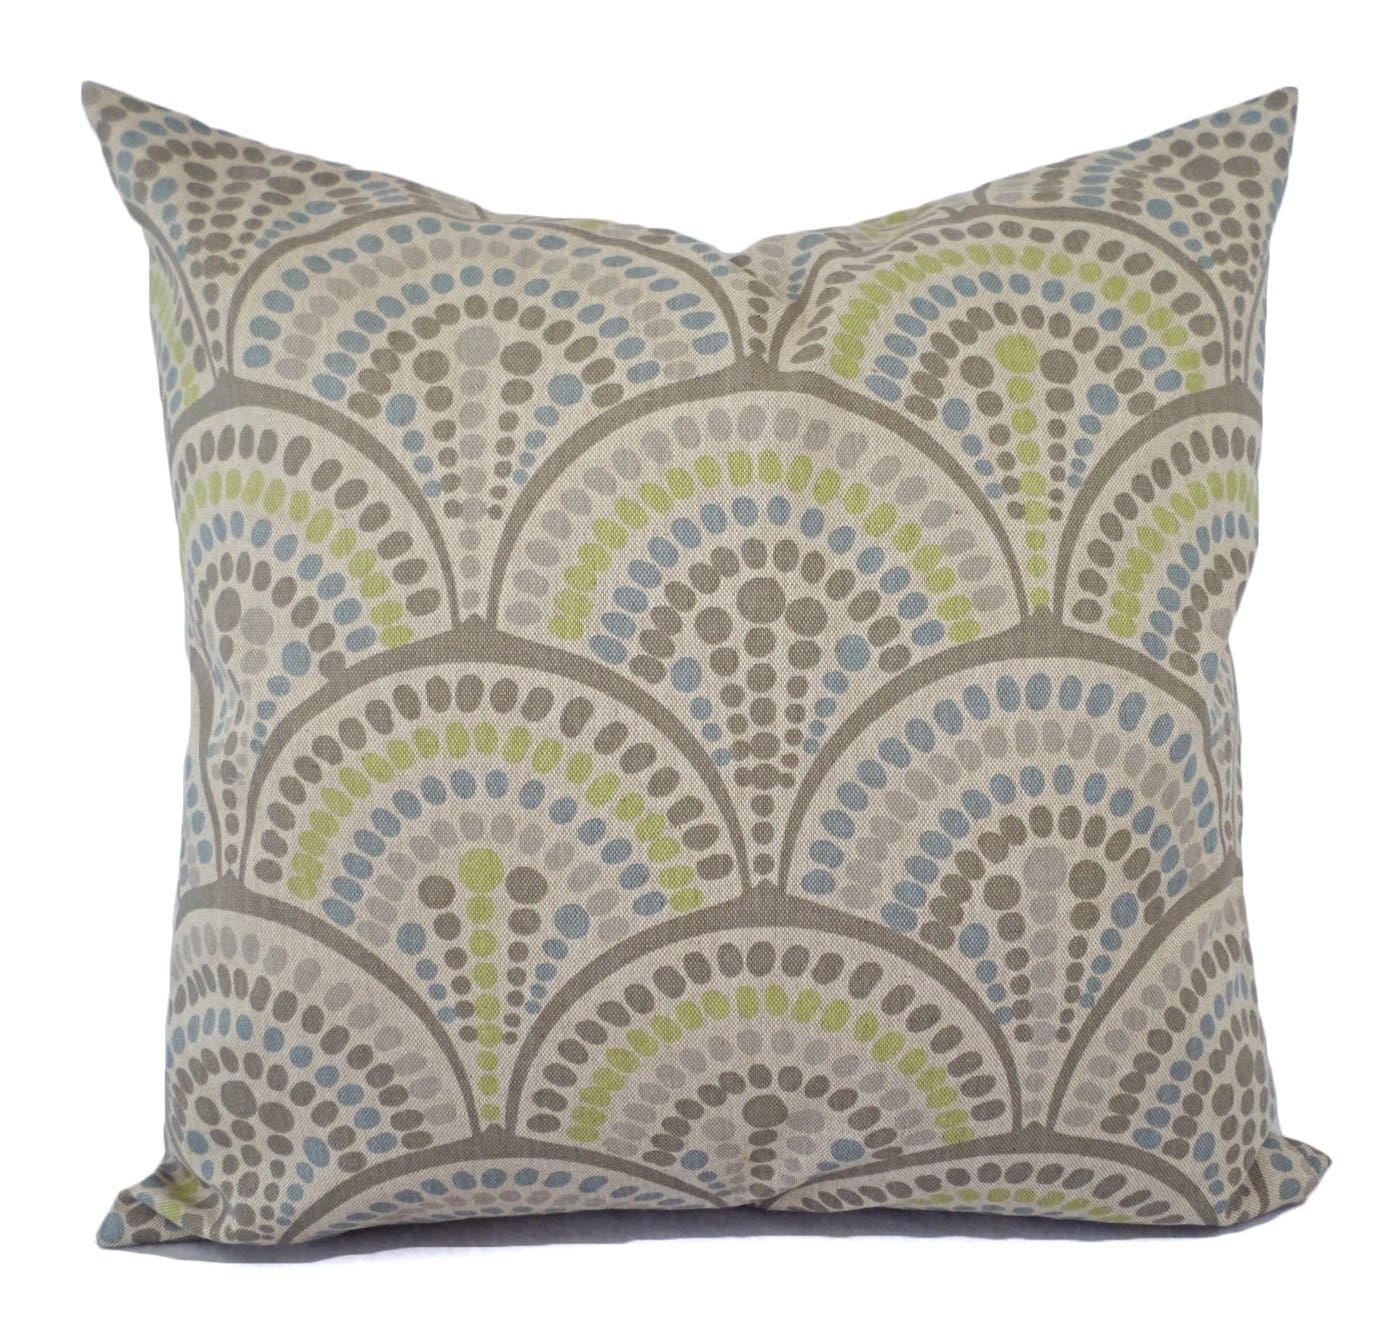 Decorative Pillows Blue Green : Two Brown Green and Blue Decorative Pillow Covers Two